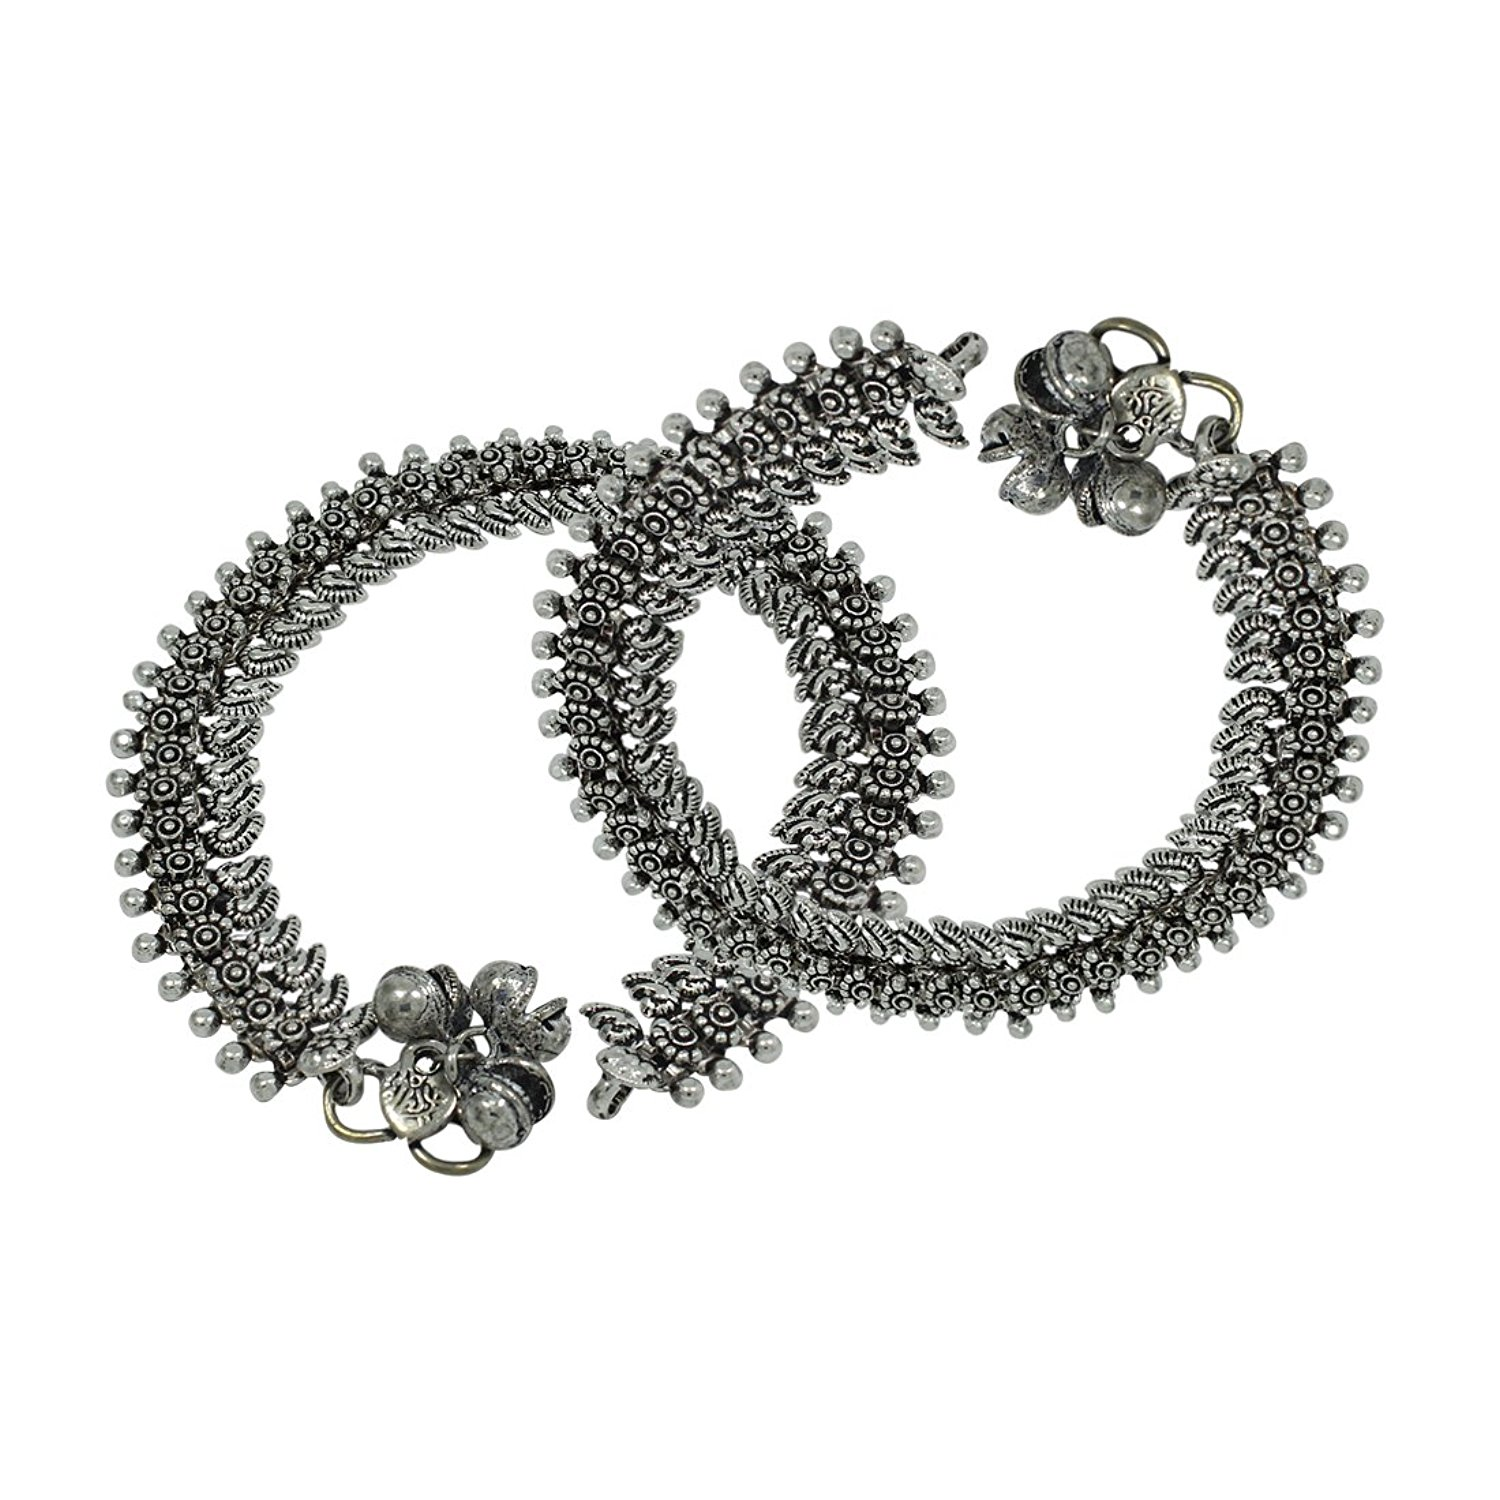 Femora Floral Oxidized German Silver Anklets